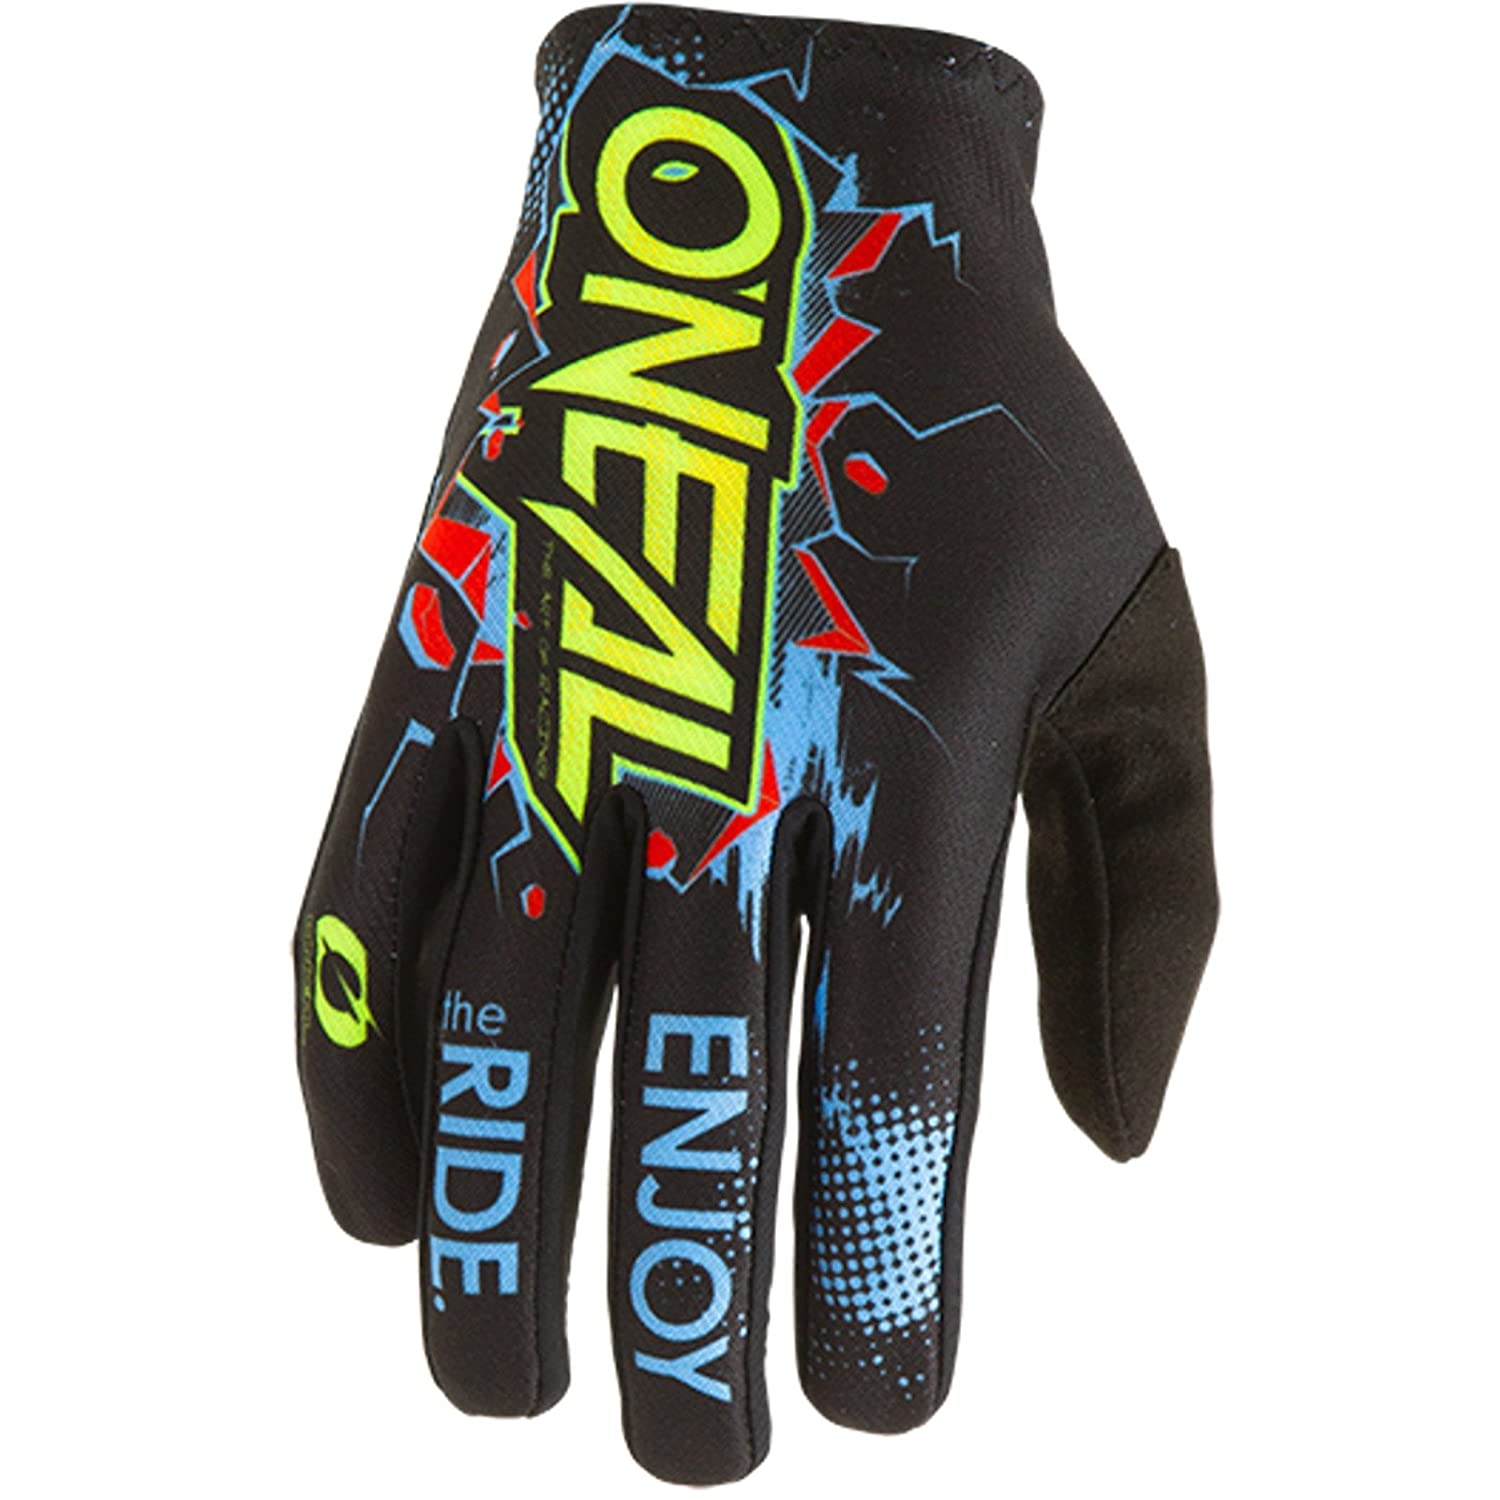 O'Neal Matrix Youth Glove villain Black XS/1 – 2  Oneal Matrix Glove